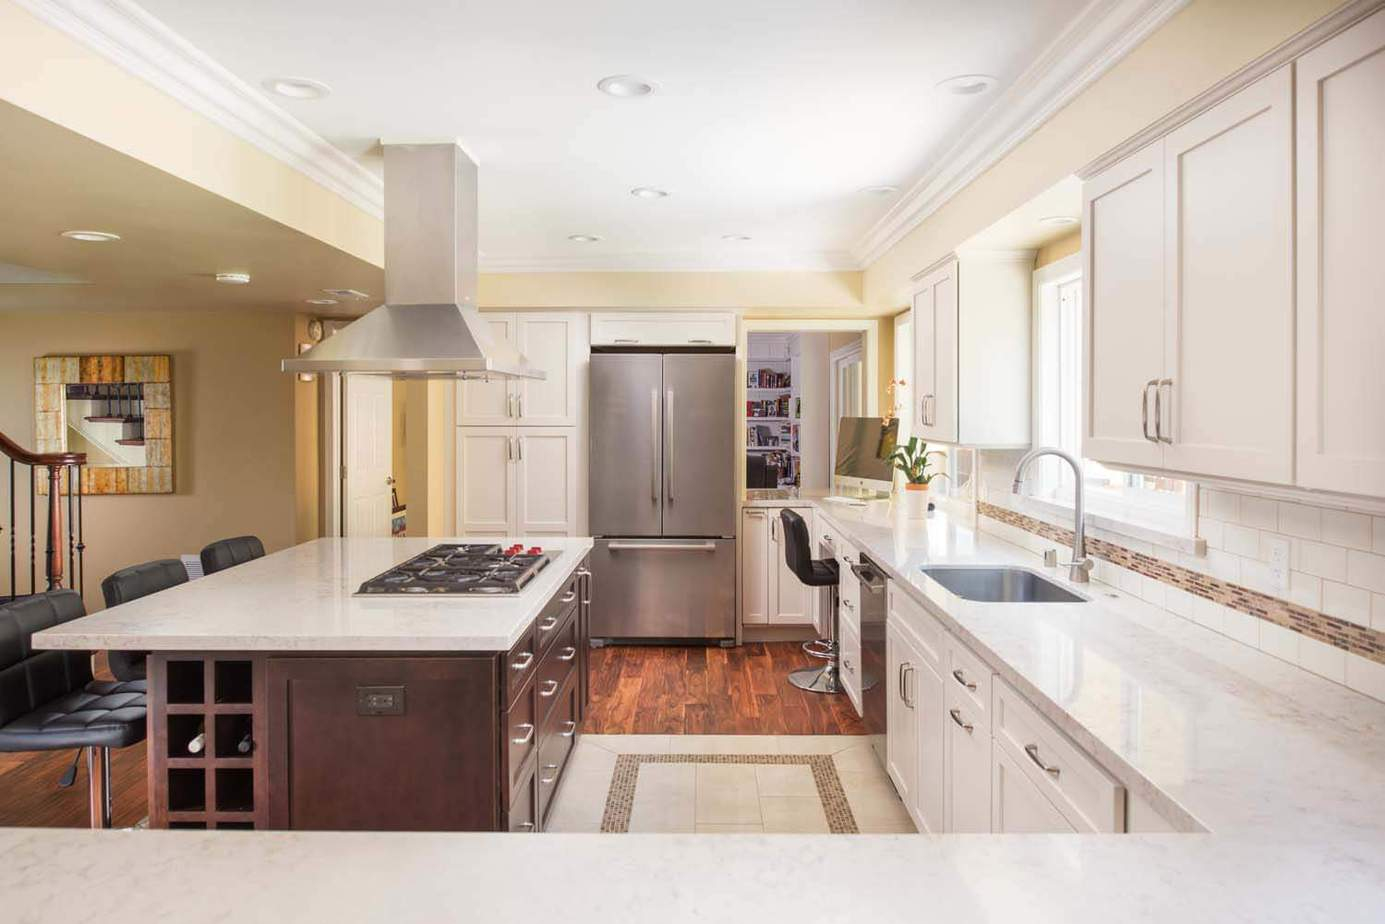 San diego home renovation contractor classic home for Home renovation contractors